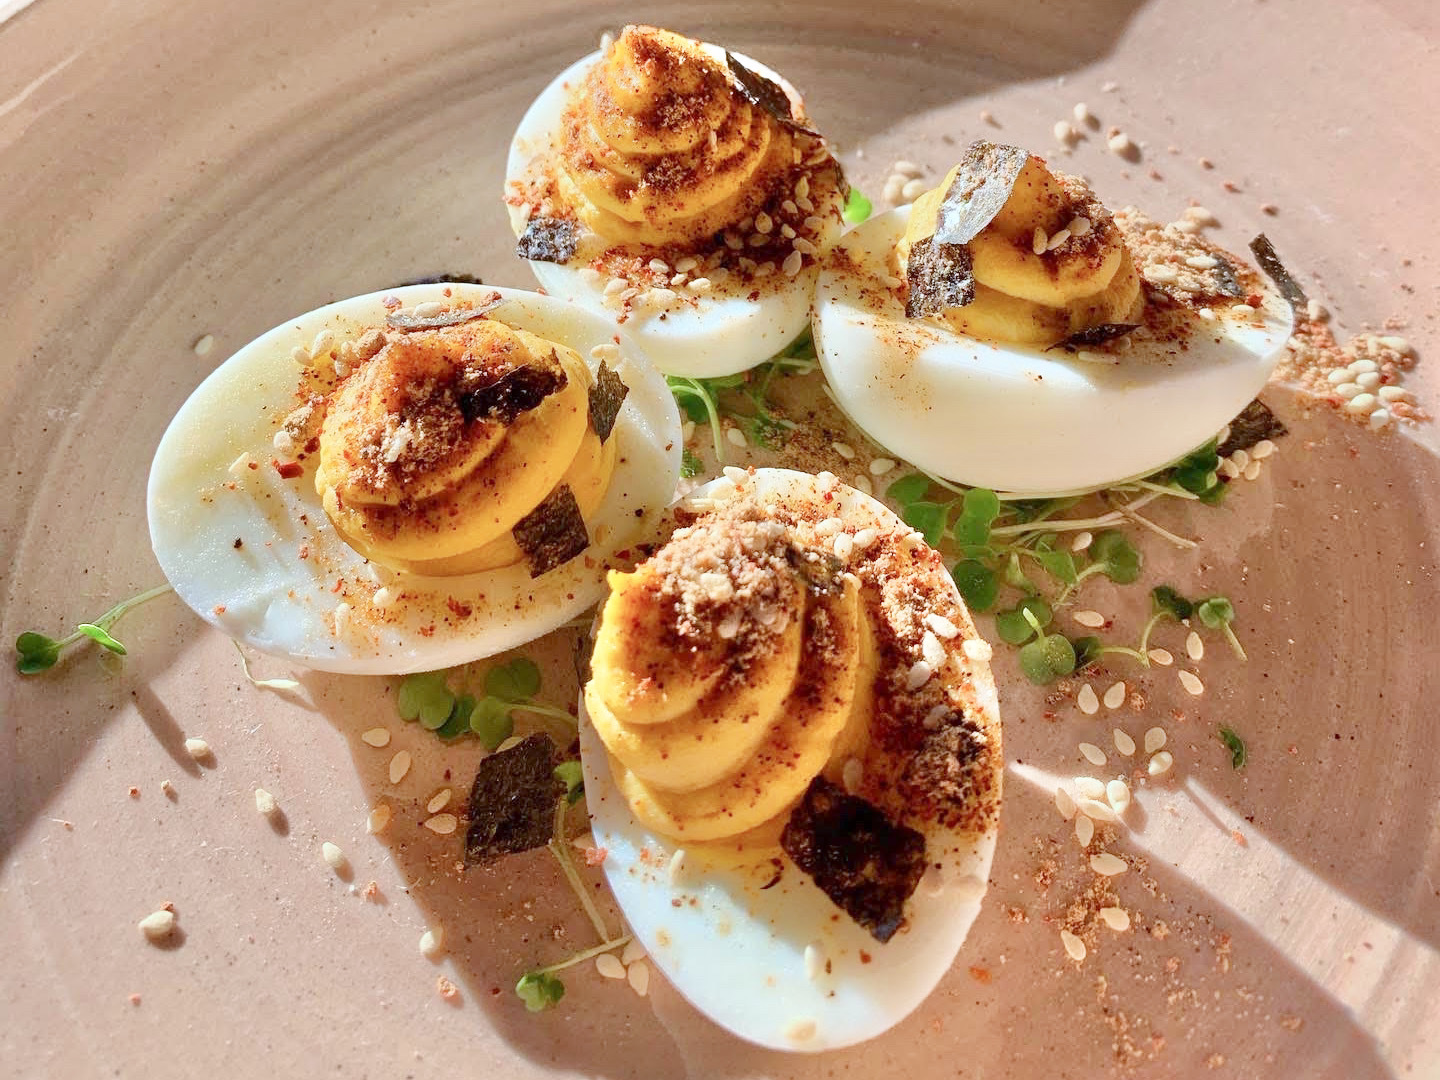 Miso deviled eggs from Hot Knife